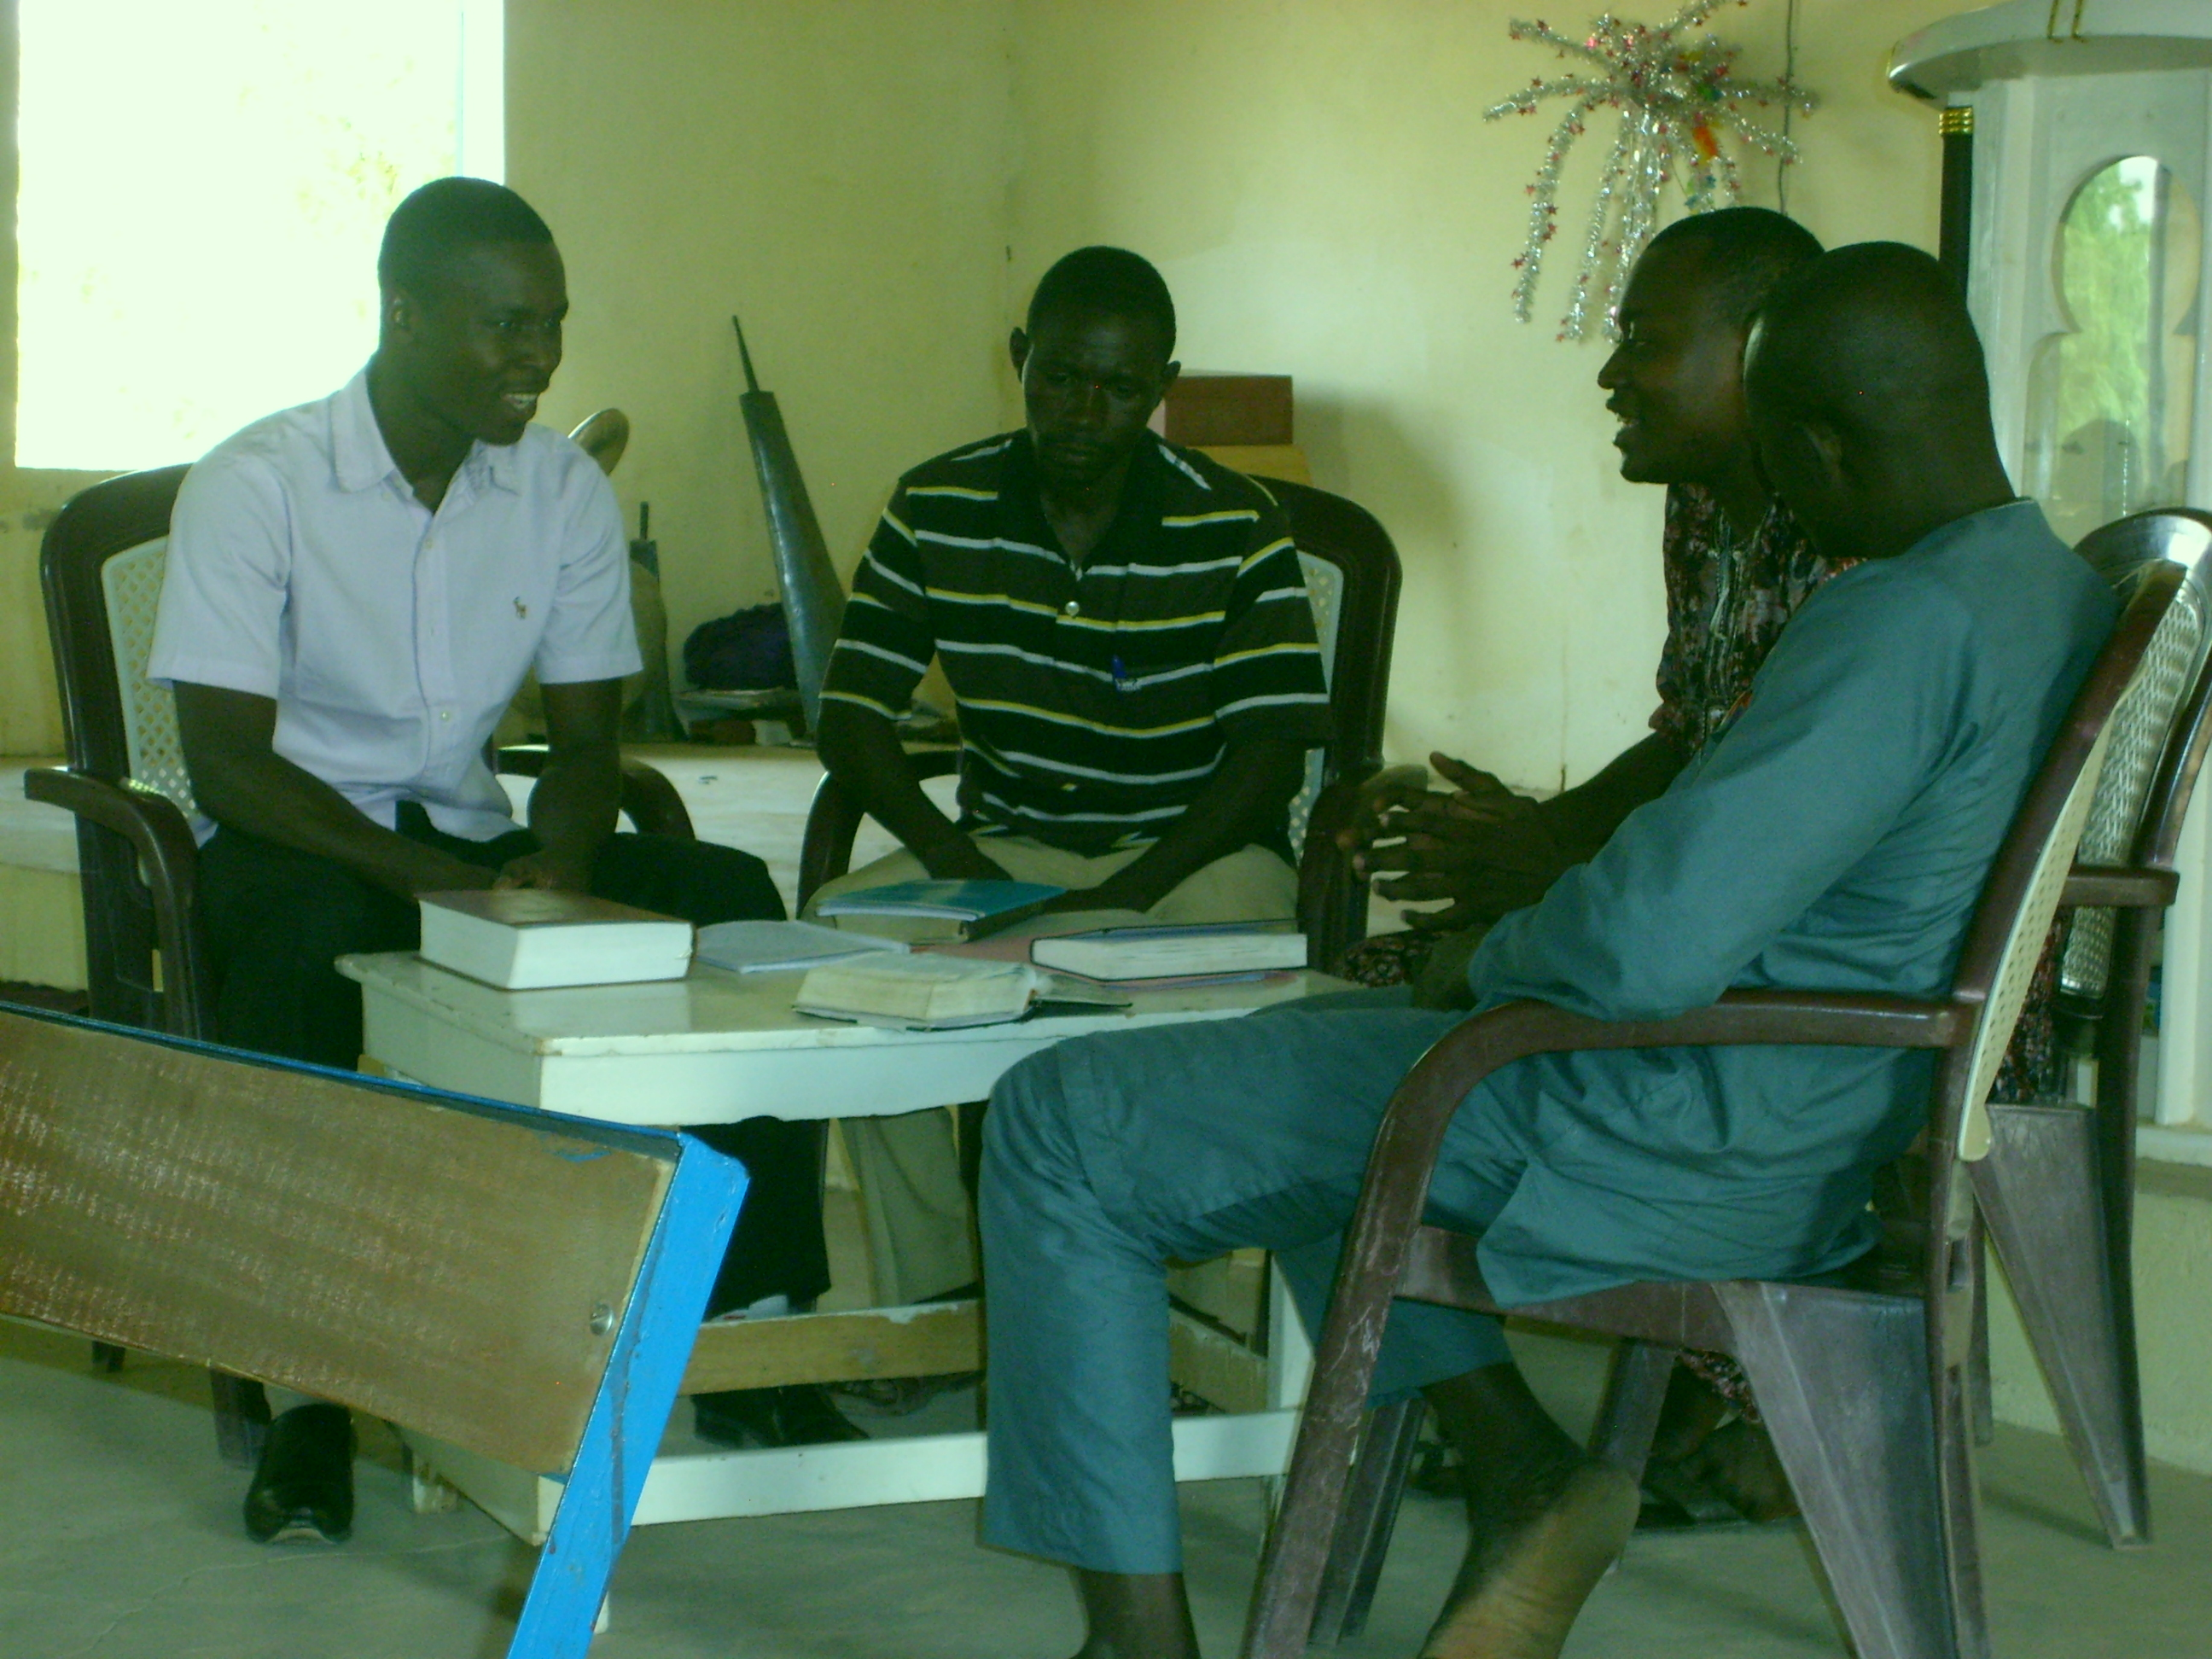 Himma (center) at our training, in group practice of 3x3 discussion with follow-up of actions from last week, a new lesson, and planning new action steps.